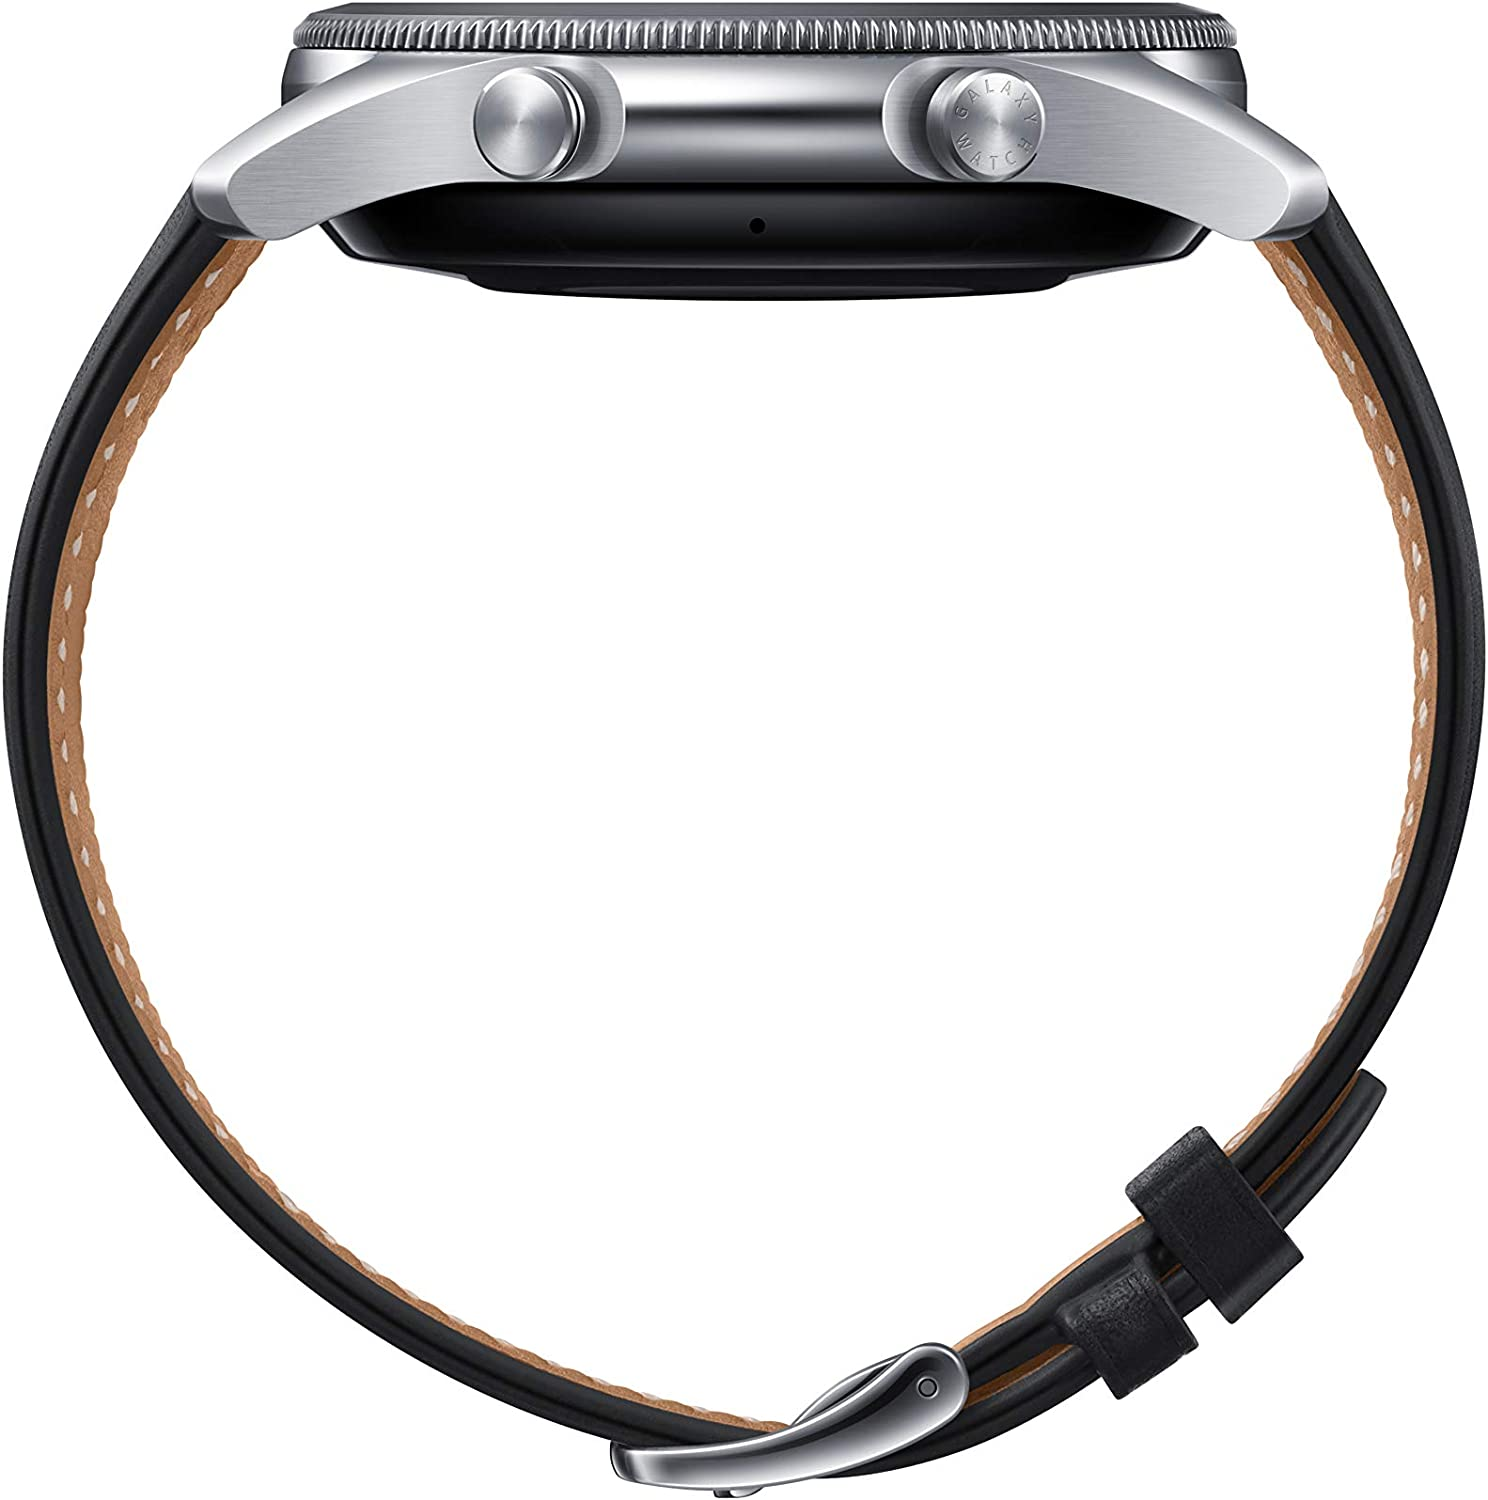 Samsung - Montre Galaxy Watch 3 - 45mm - Couleur Argent